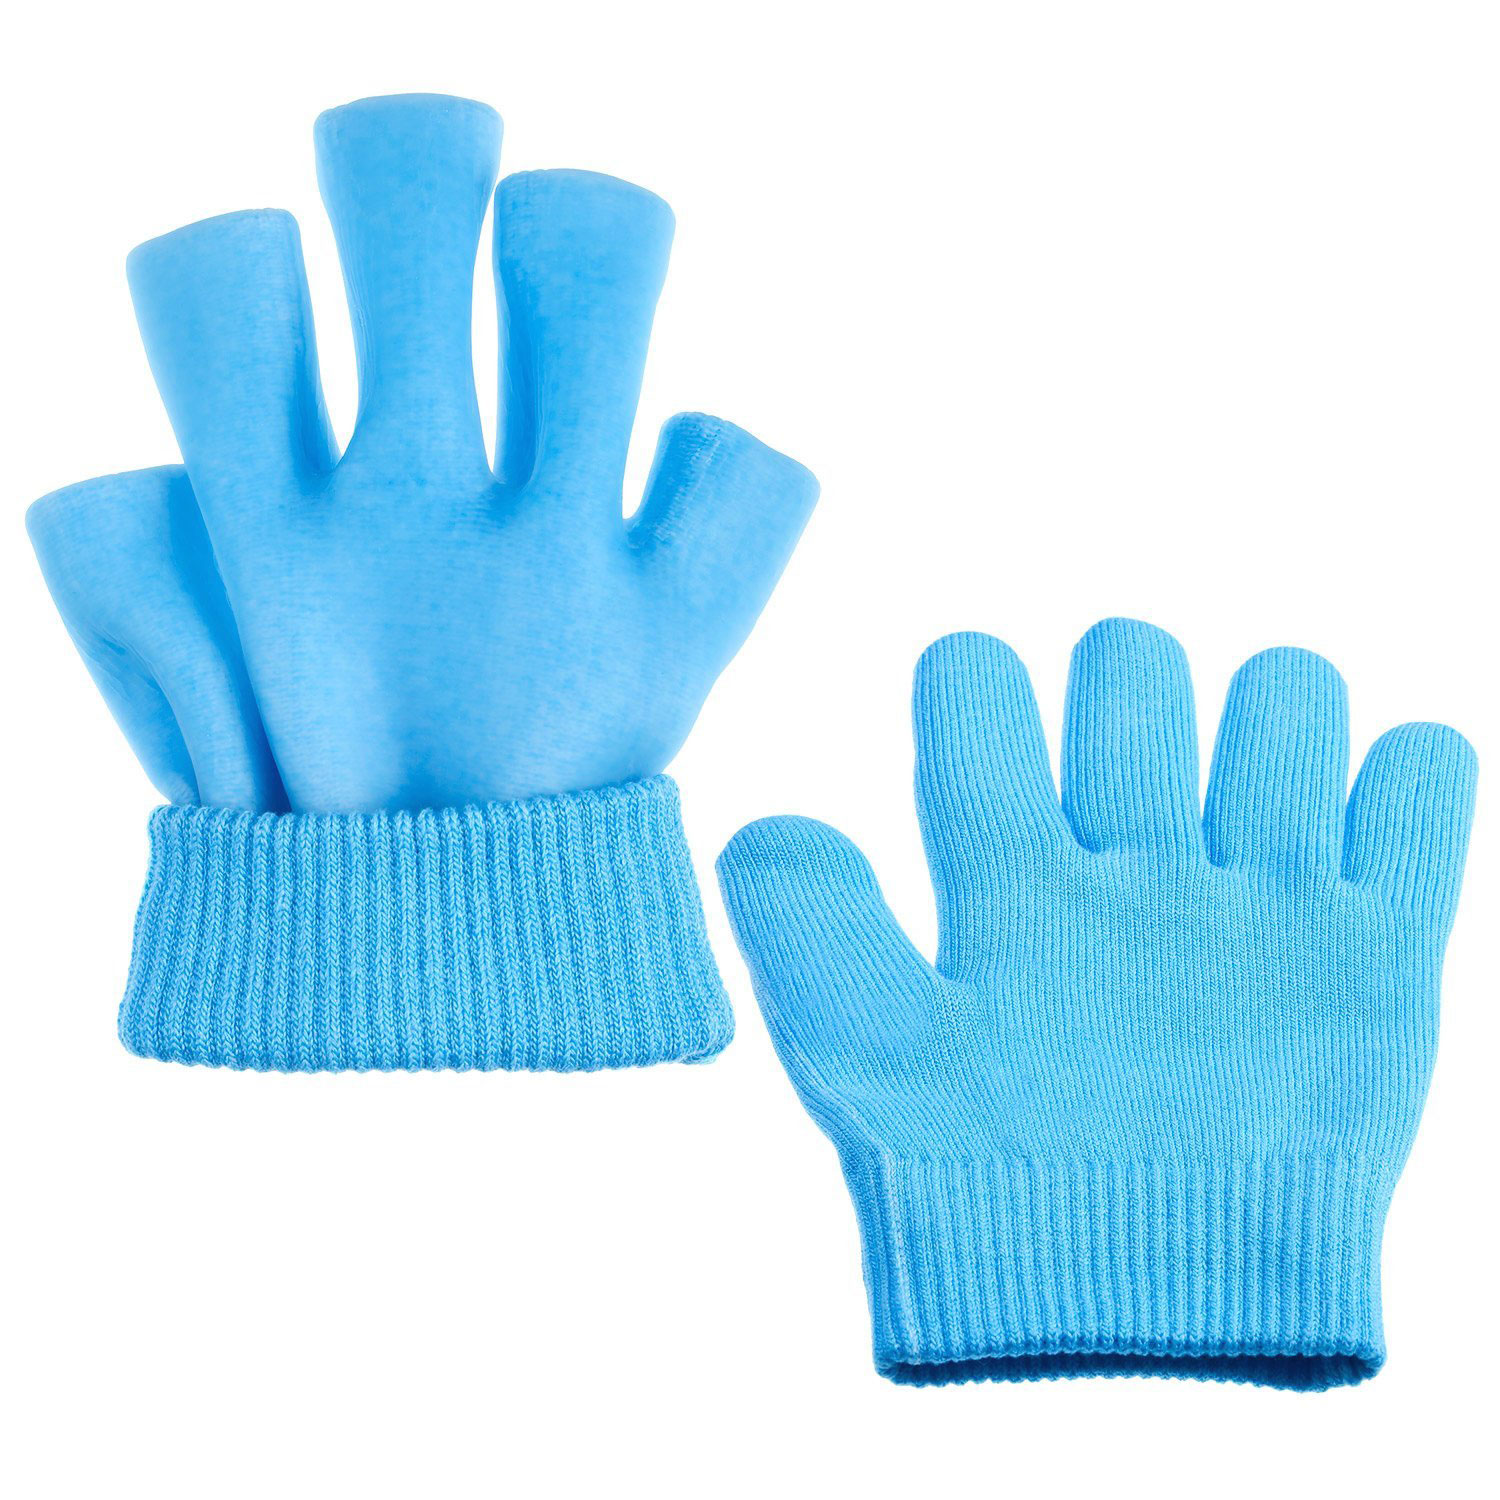 Gel SPA Moisturizing Gloves Repair Cracked Cuticles Dry Skin Treatment Whitening Exfoliating Therapy Hand Skin Care 1 Pair Blue